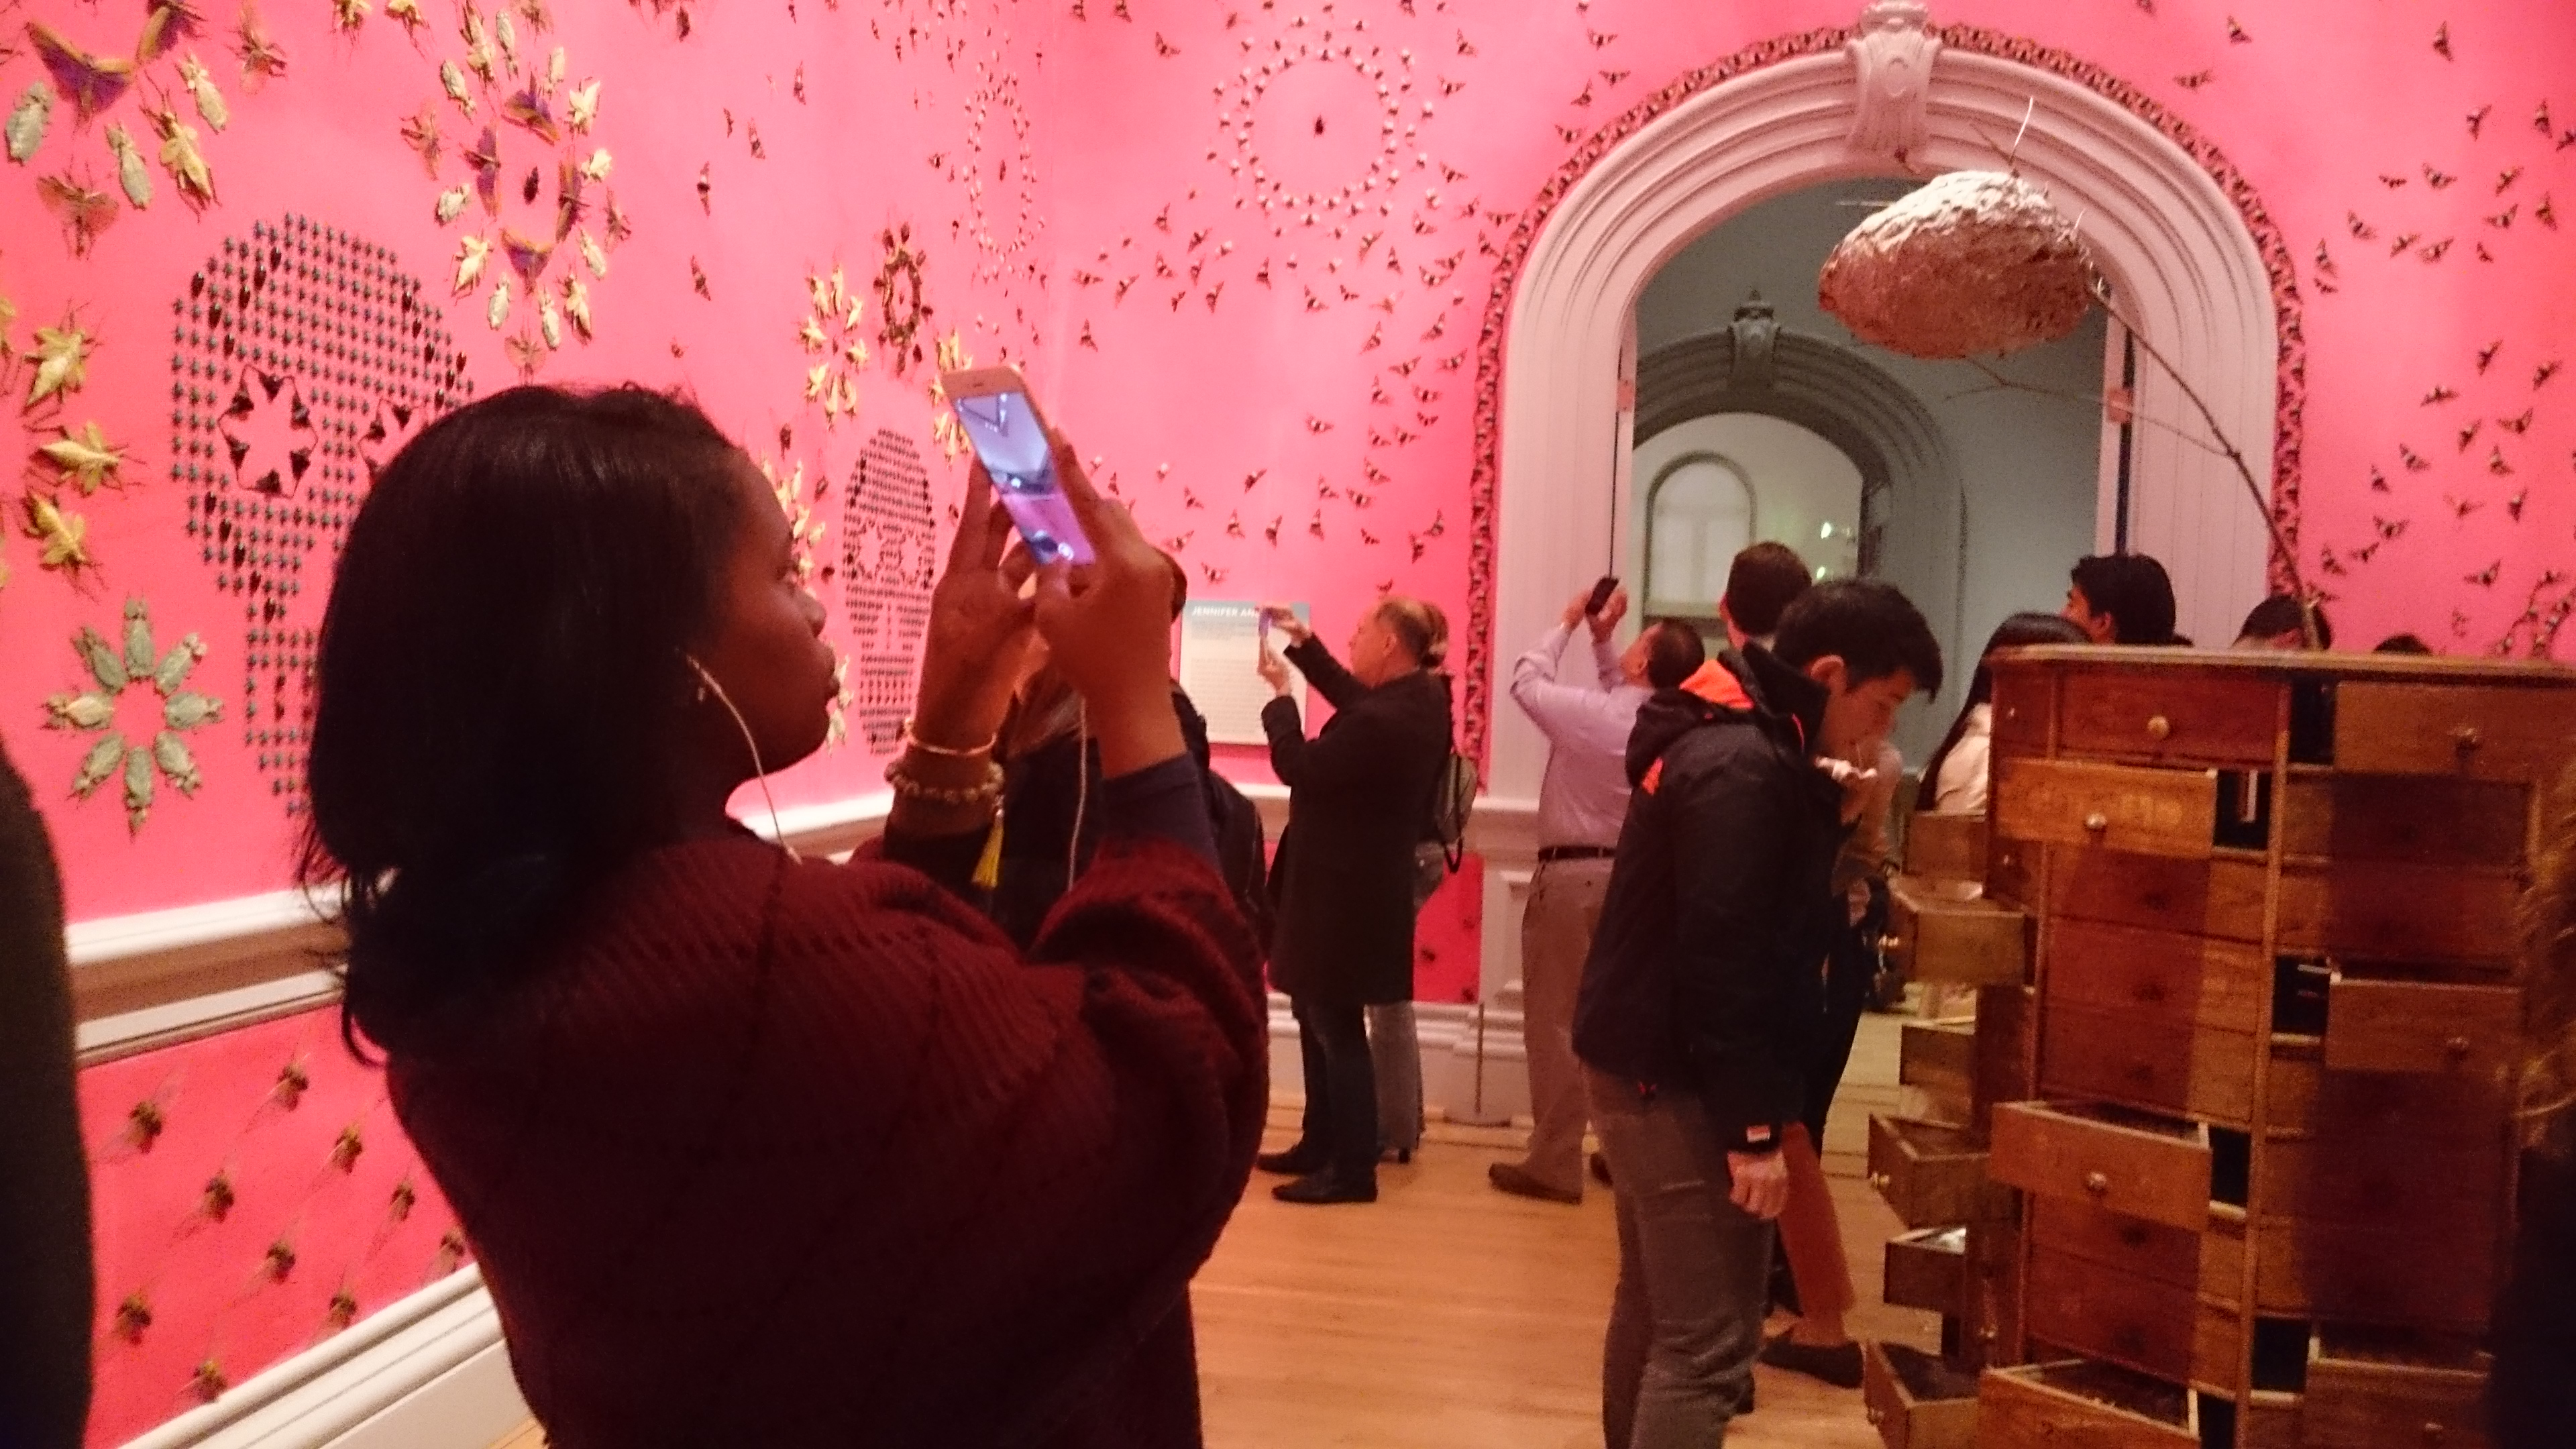 Picture of artwork and person taking photo in the Renwick Gallery